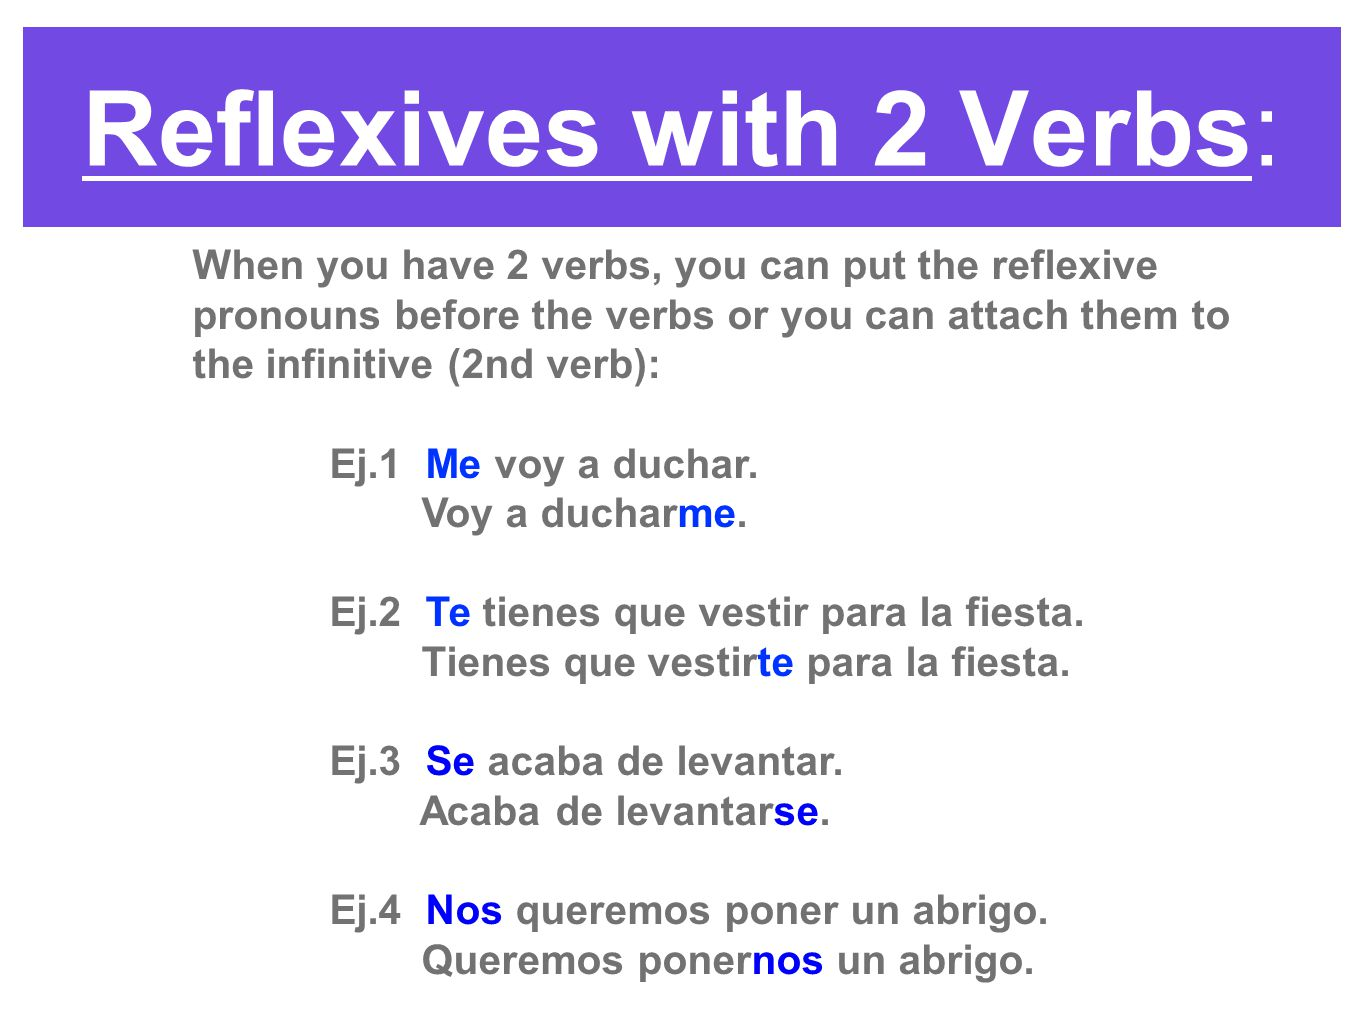 Reflexives with 2 Verbs: